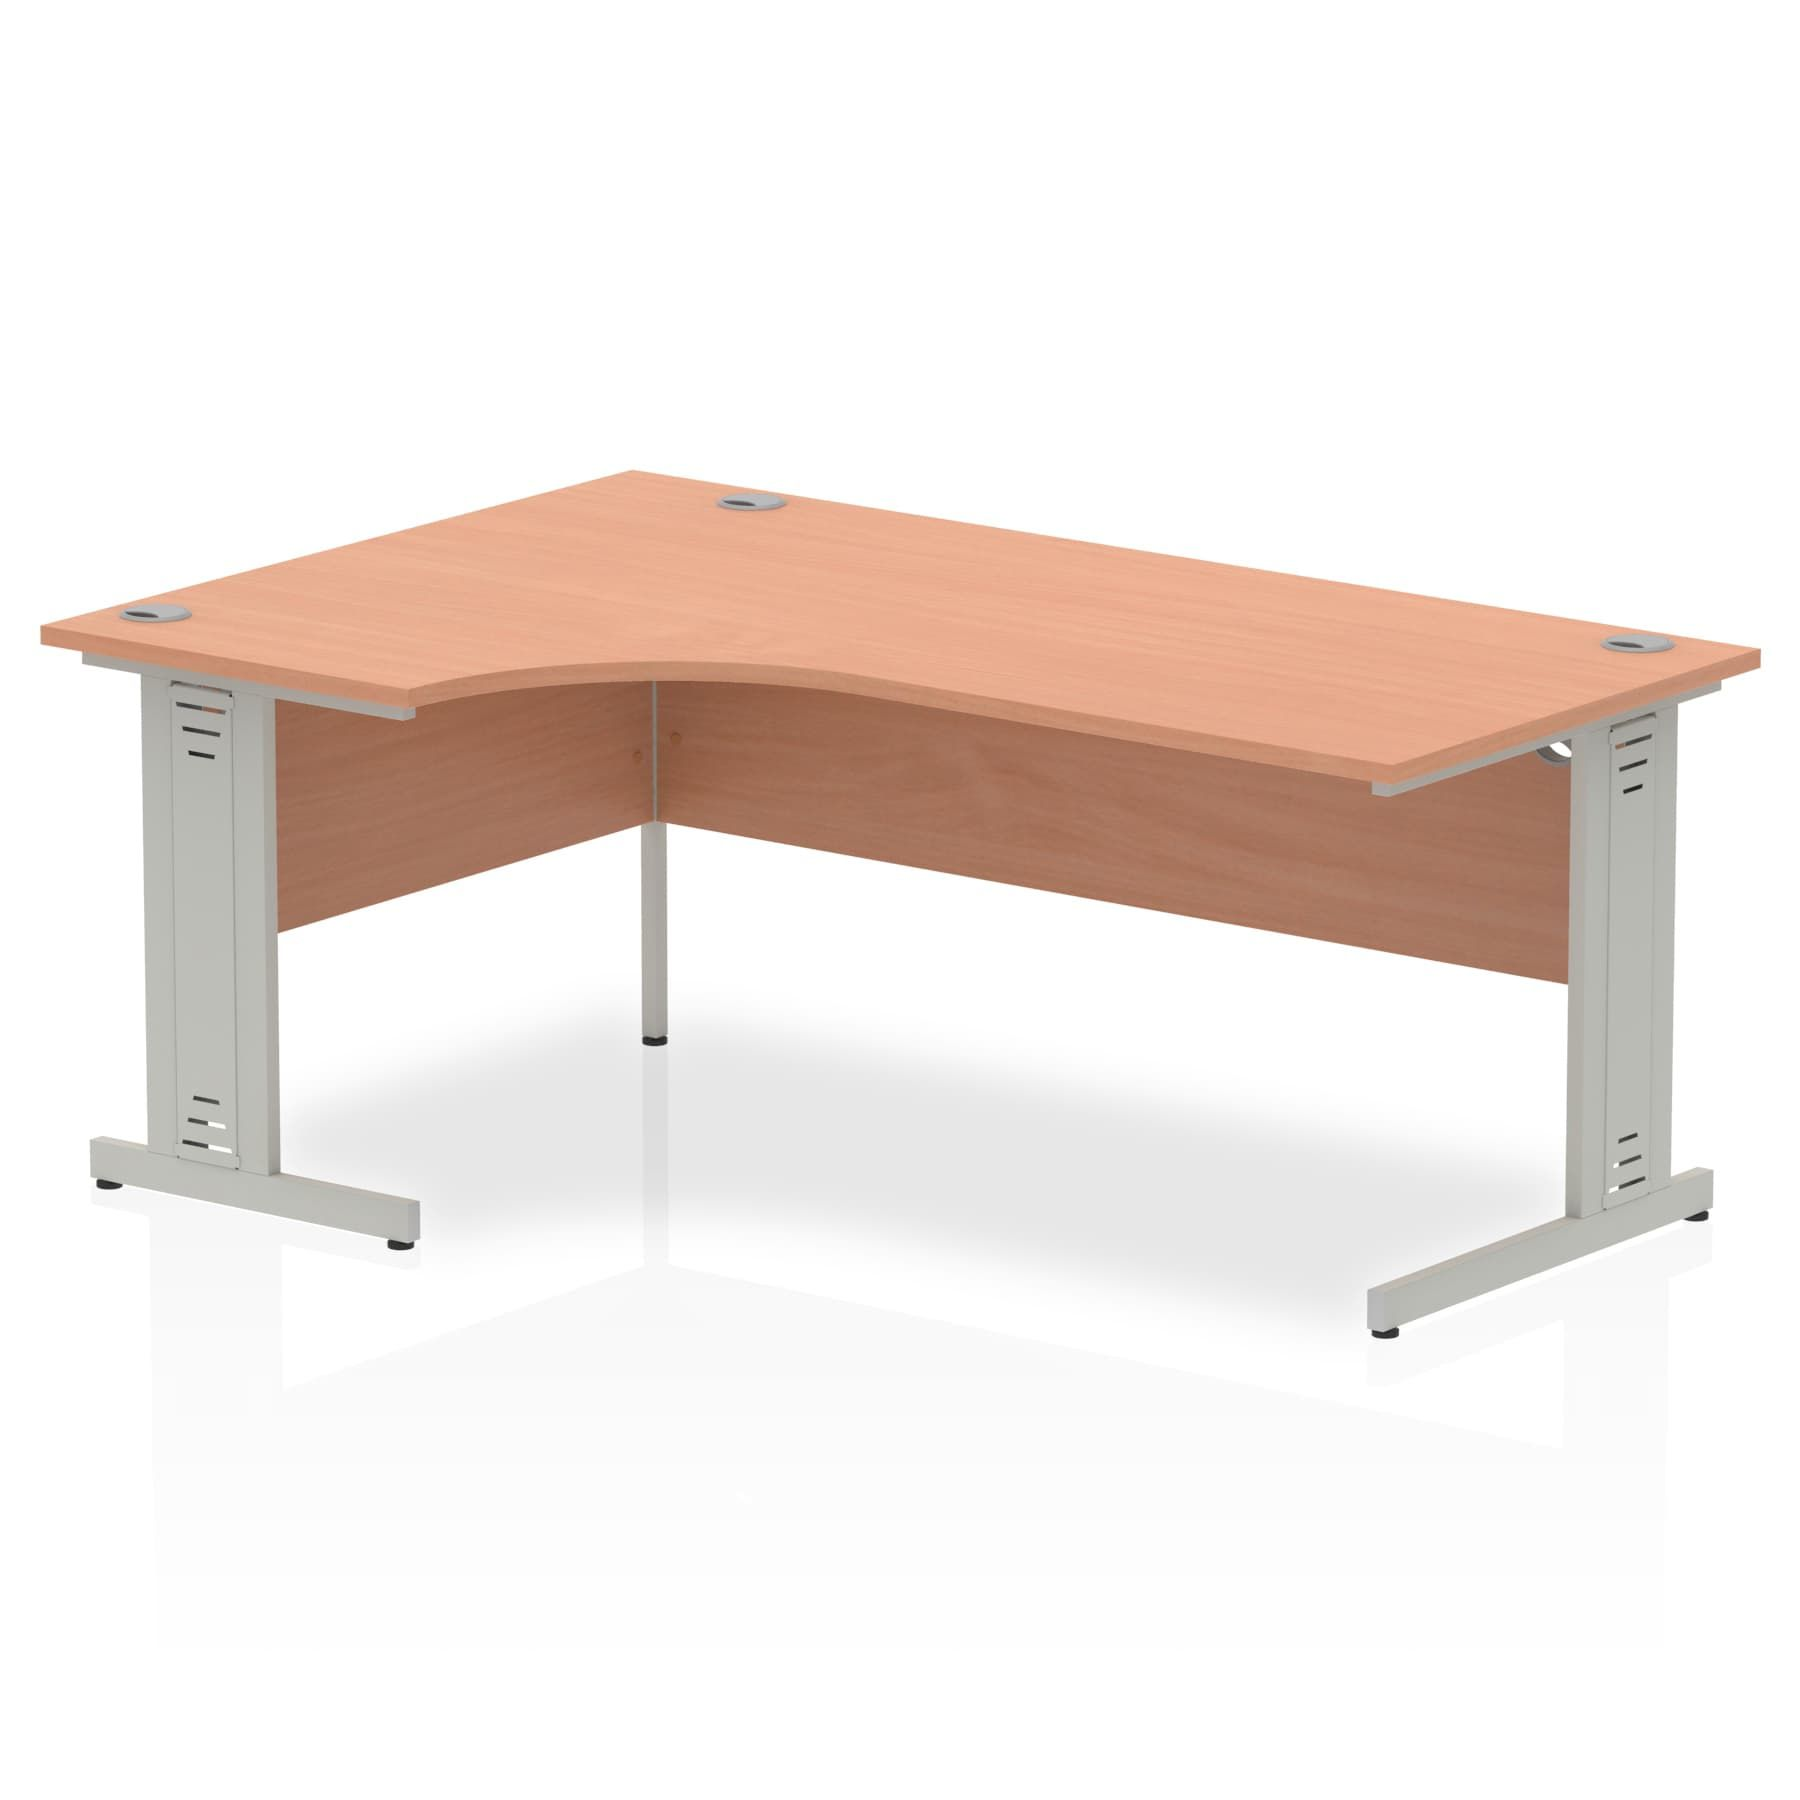 Impulse 1800 Left Hand Crescent Desk